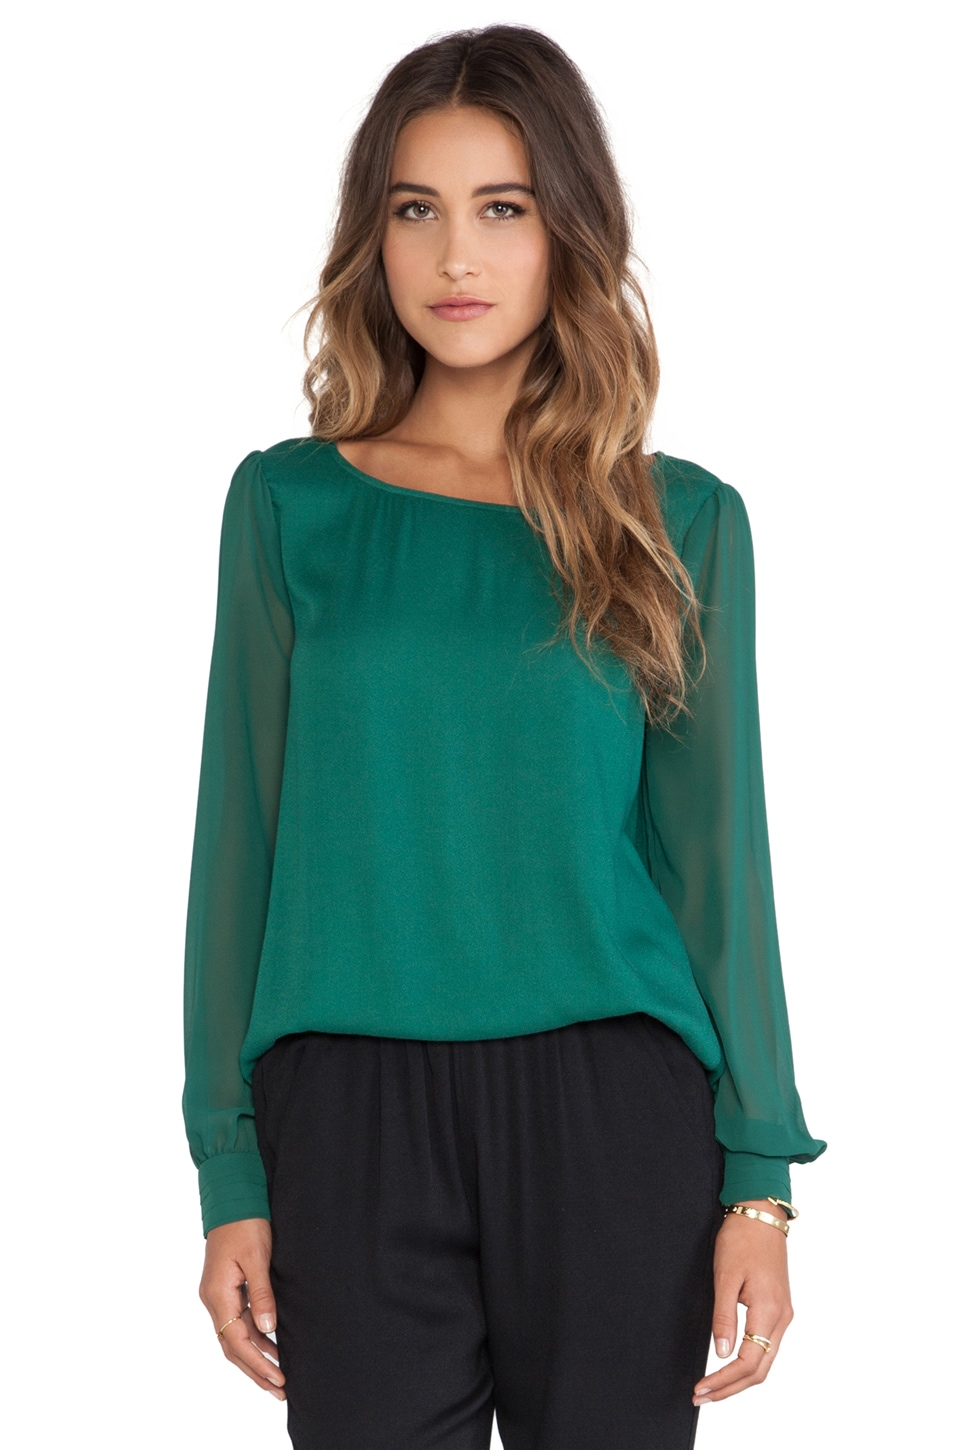 Ella Moss Stella Blouse in Hunter